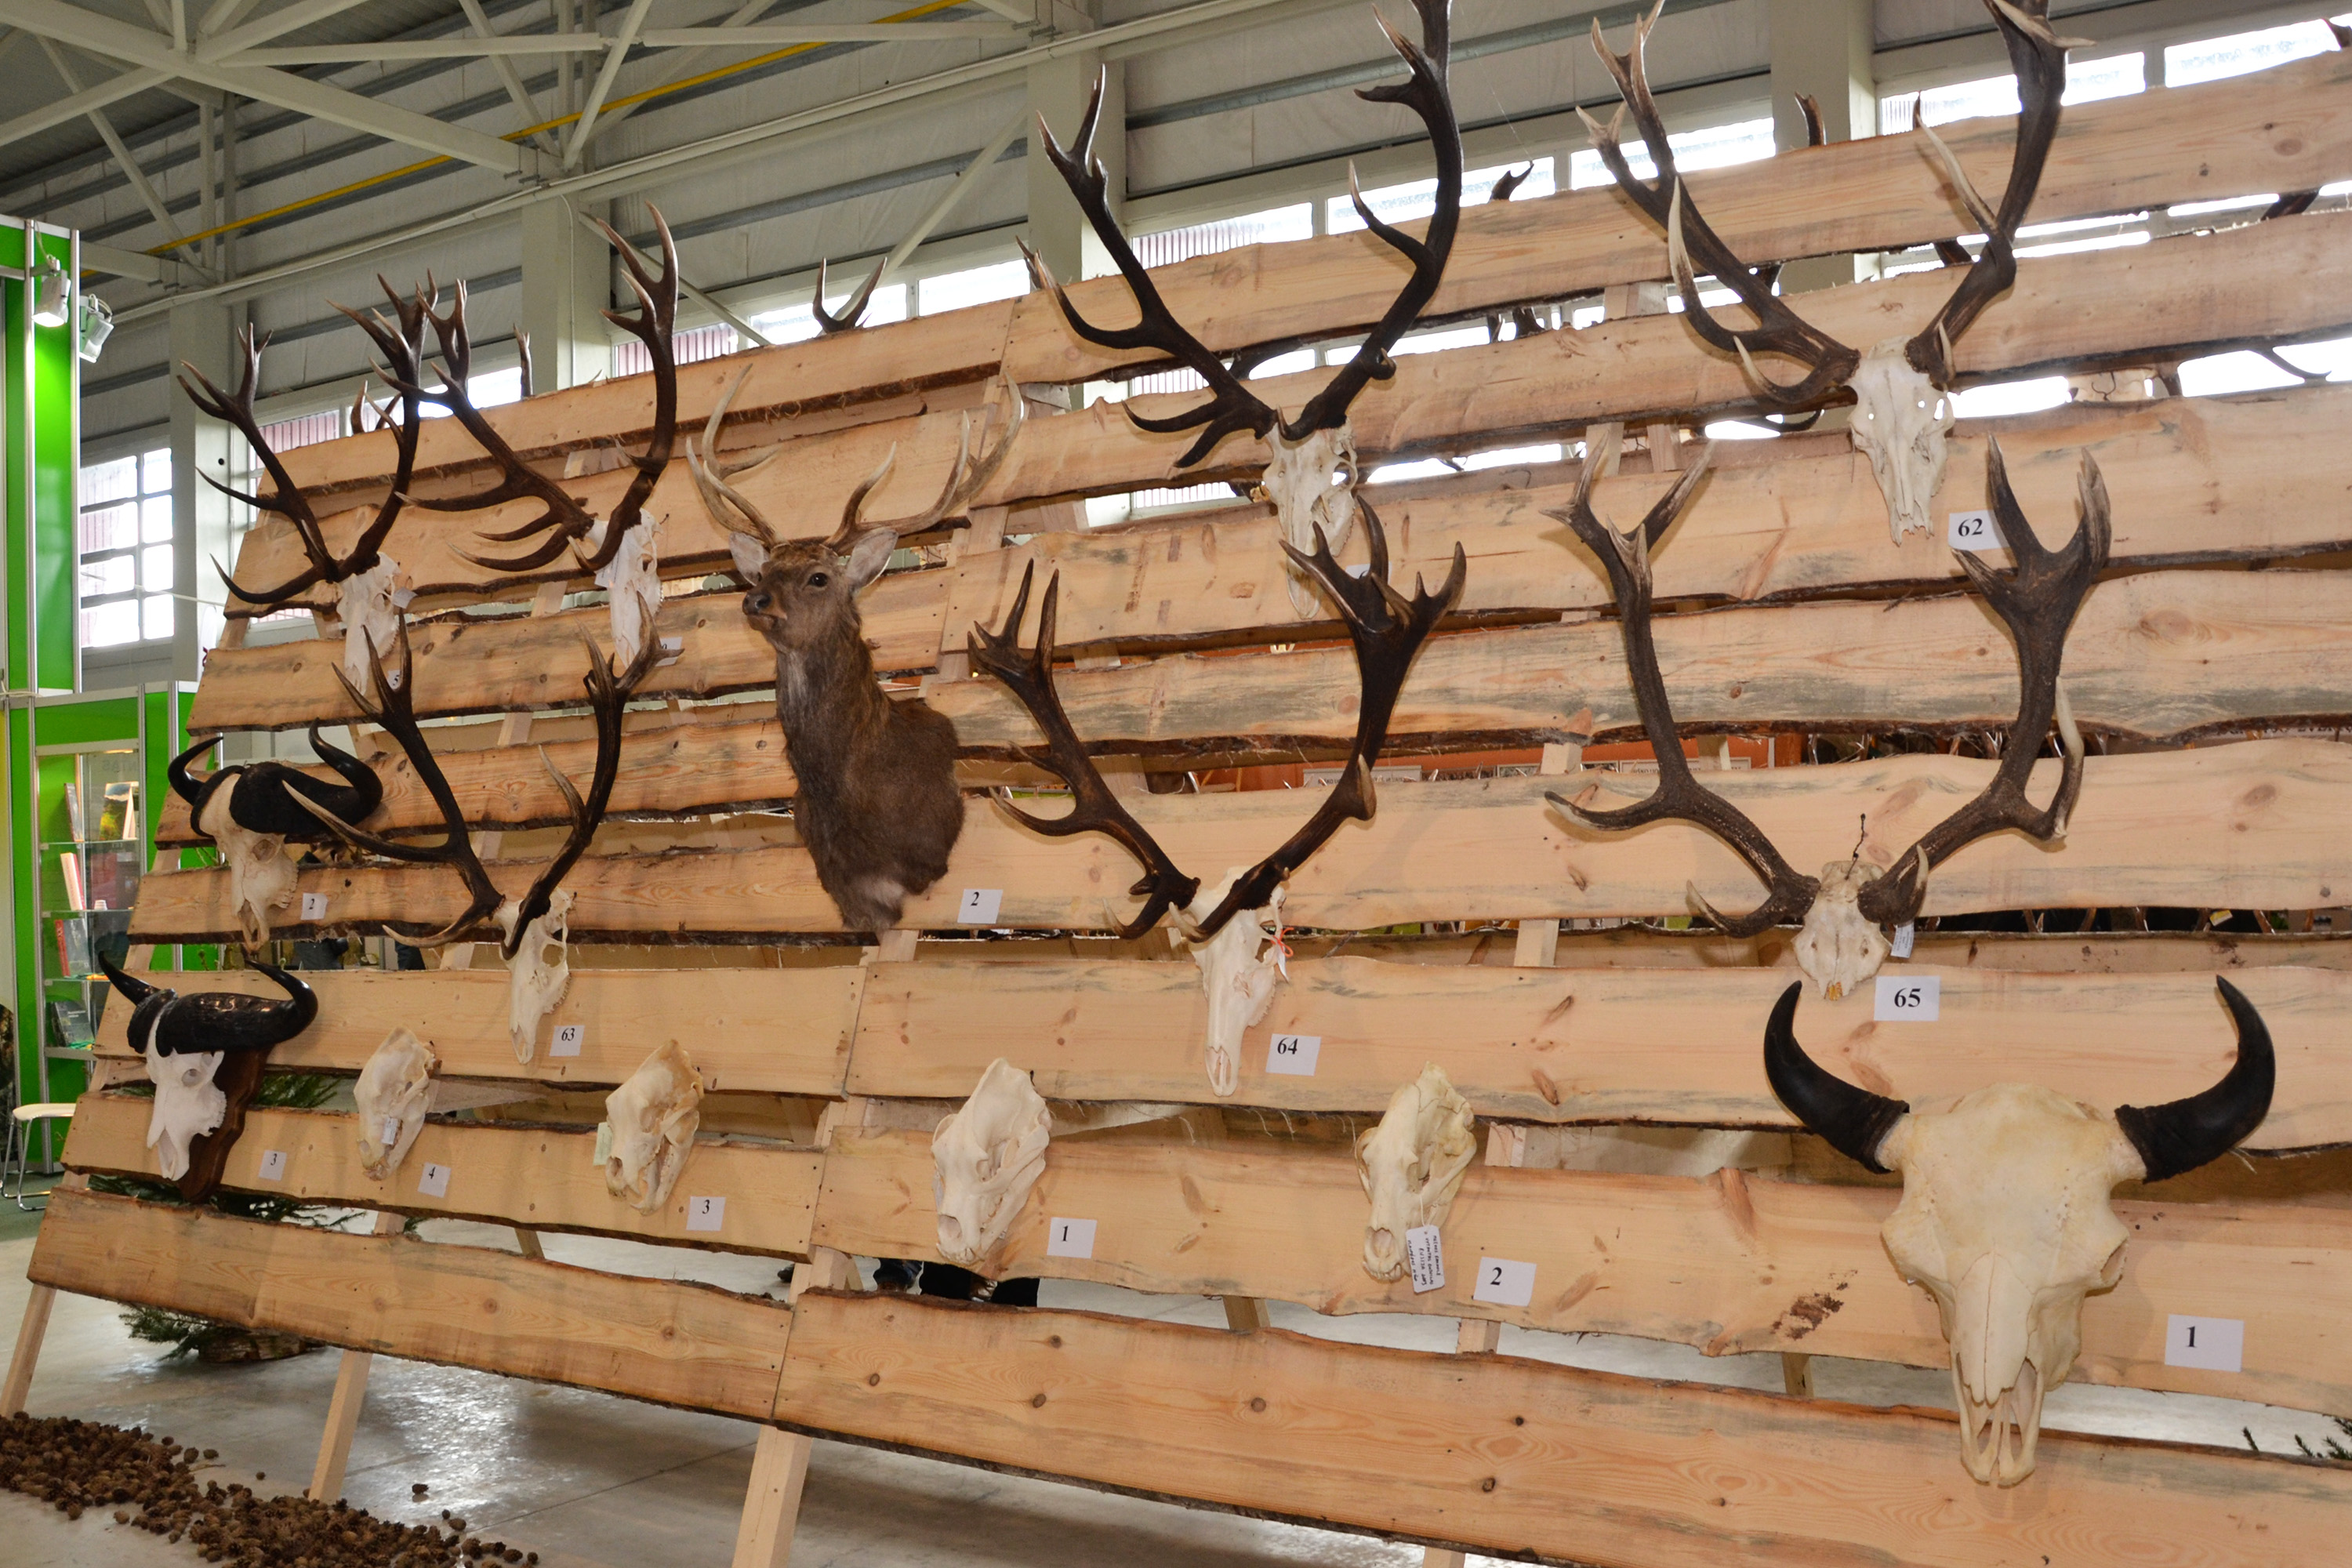 Trophy antlers, Specimen, Mounting, Museum, Preservation, HQ Photo